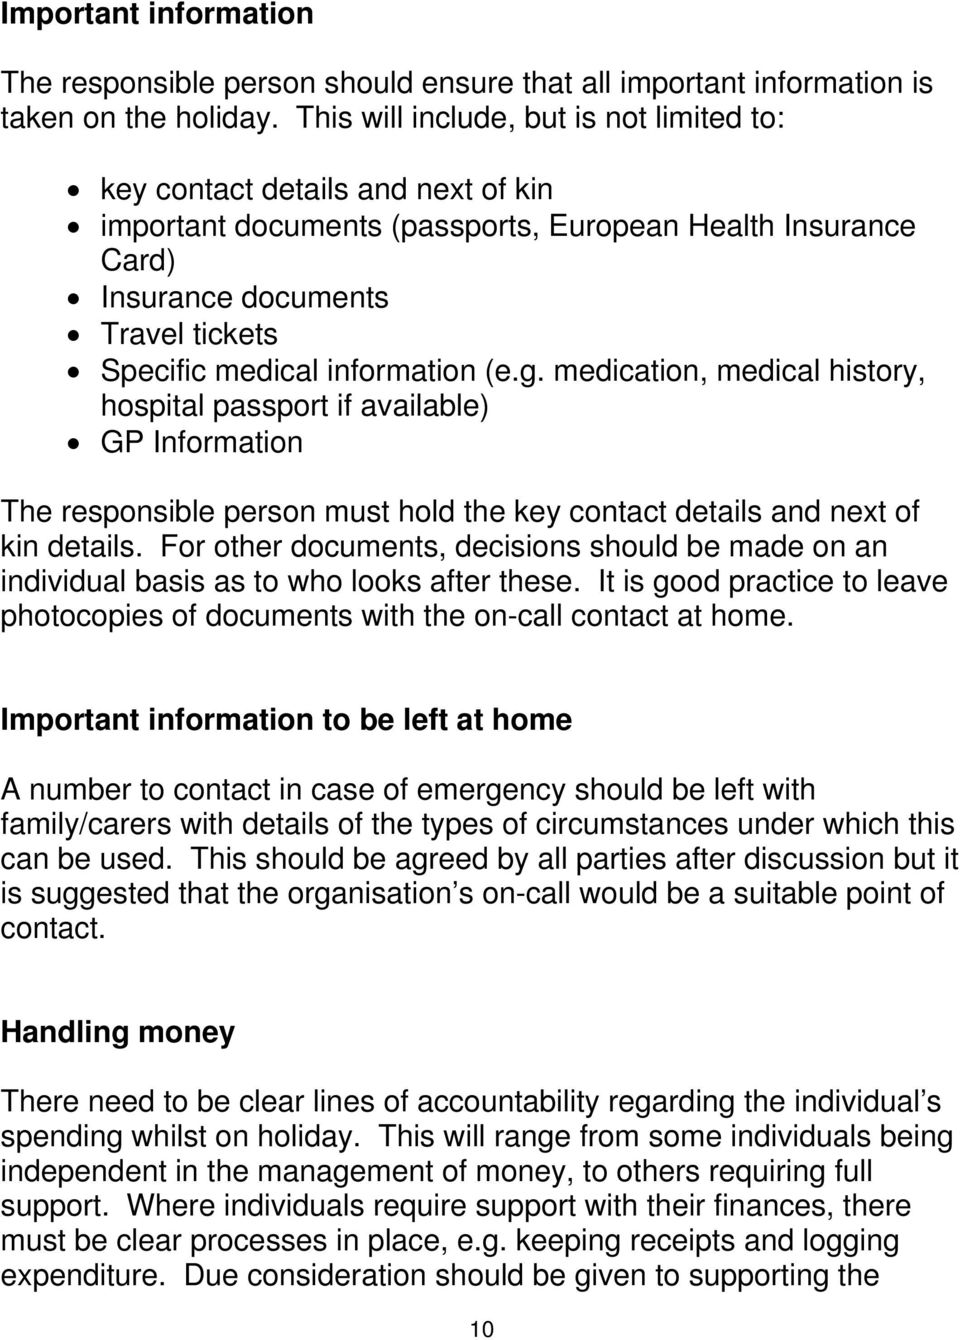 information (e.g. medication, medical history, hospital passport if available) GP Information The responsible person must hold the key contact details and next of kin details.